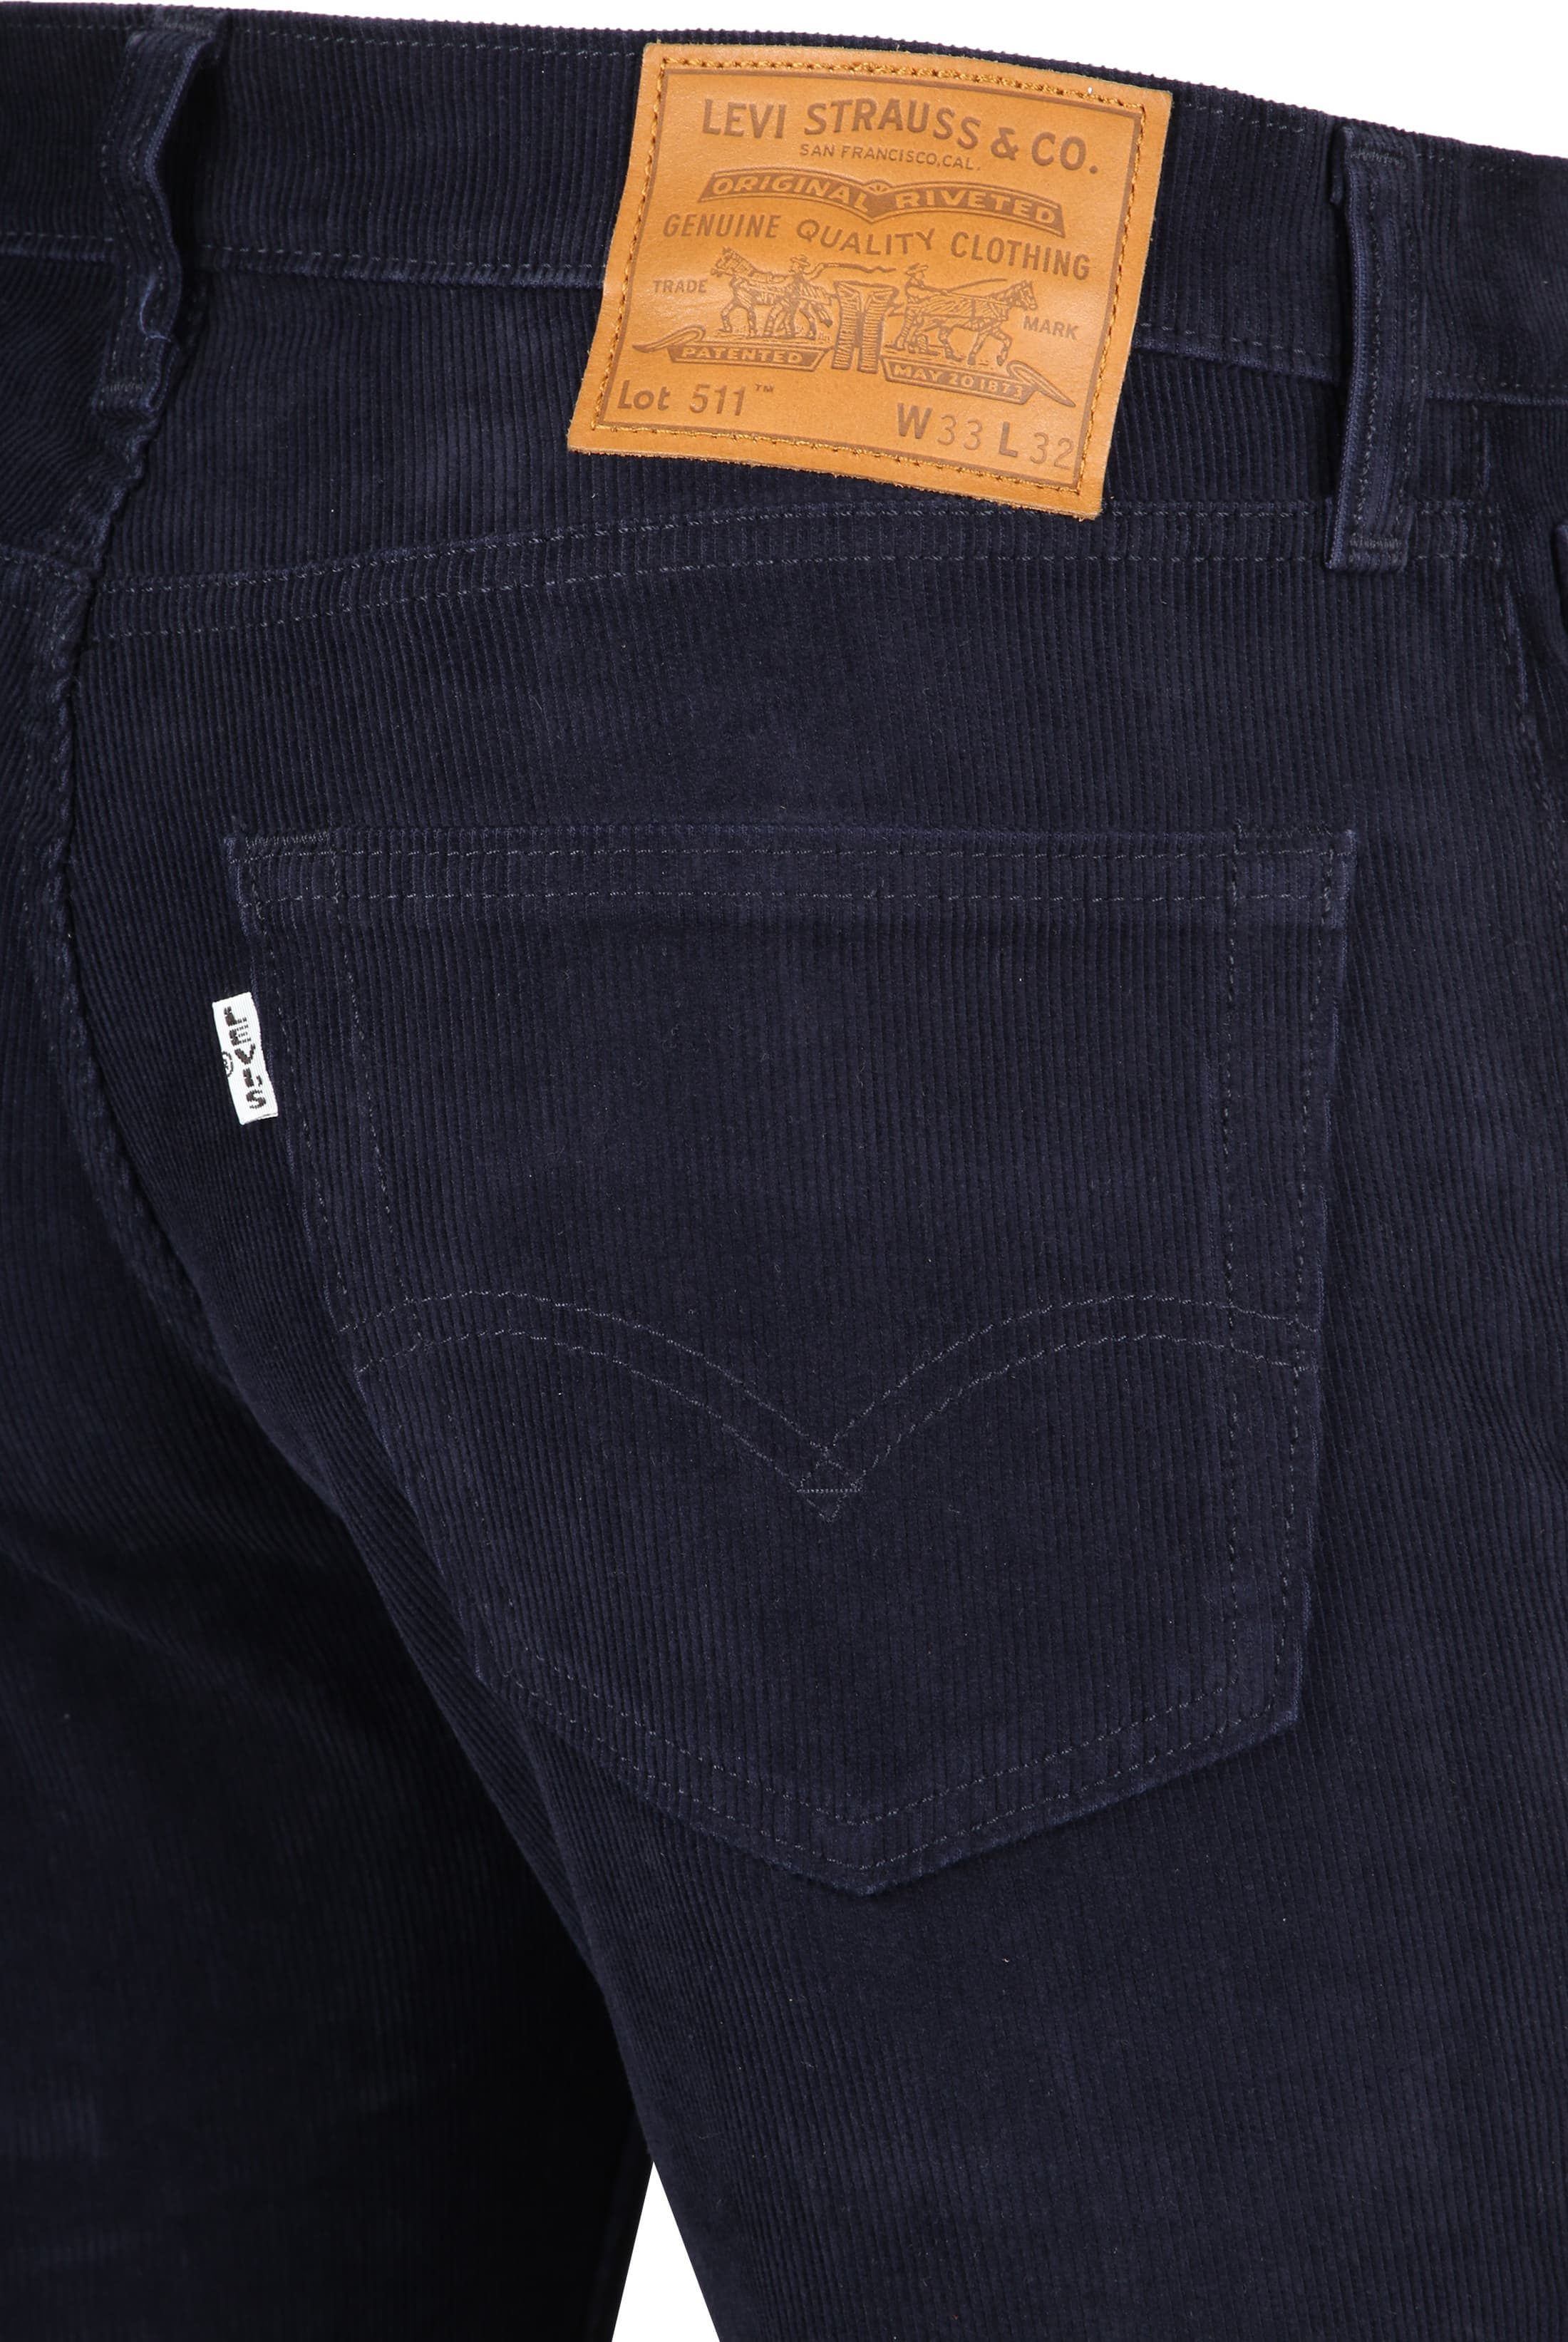 Levi's 511 Broek Slim Fit Navy foto 2